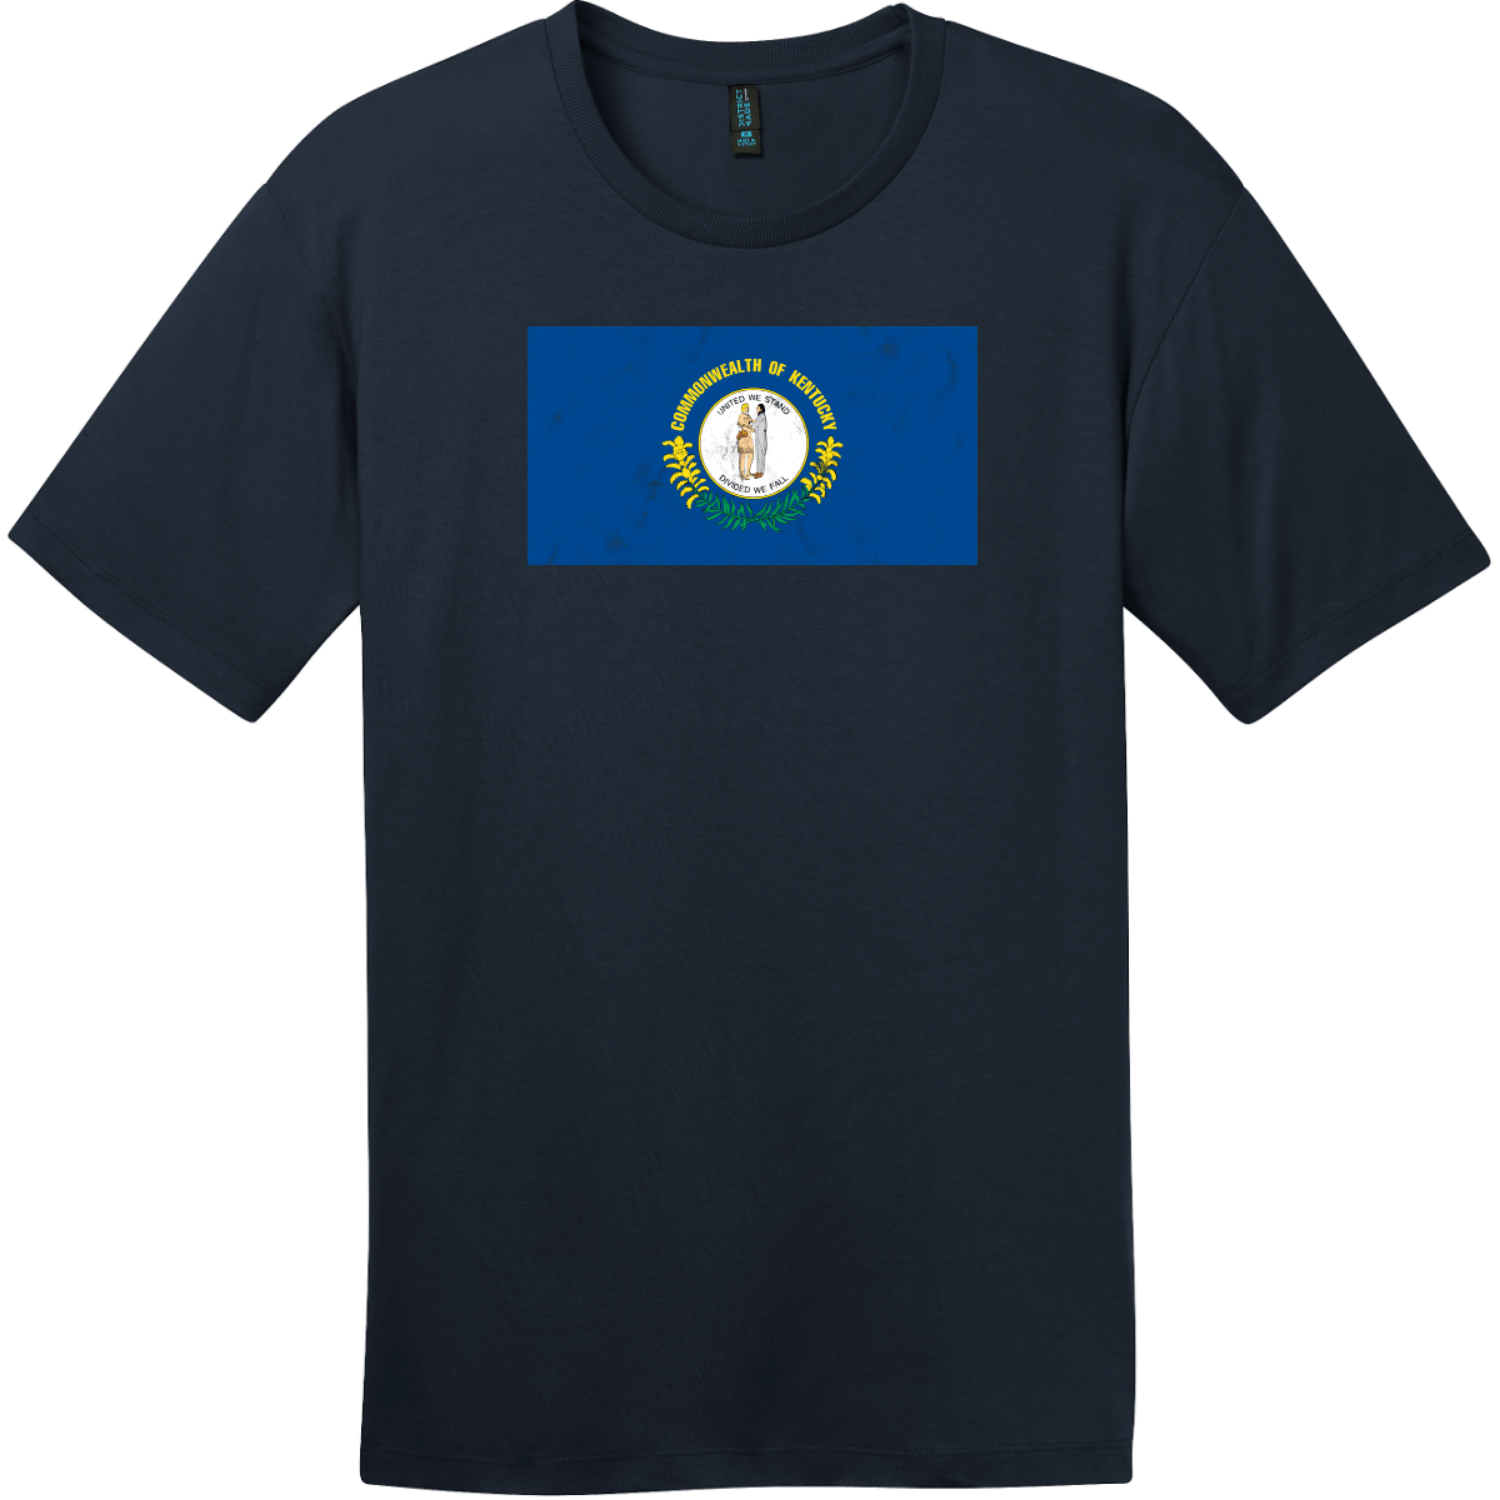 Kentucky State Flag Vintage T-Shirt New Navy District Perfect Weight Tee DT104